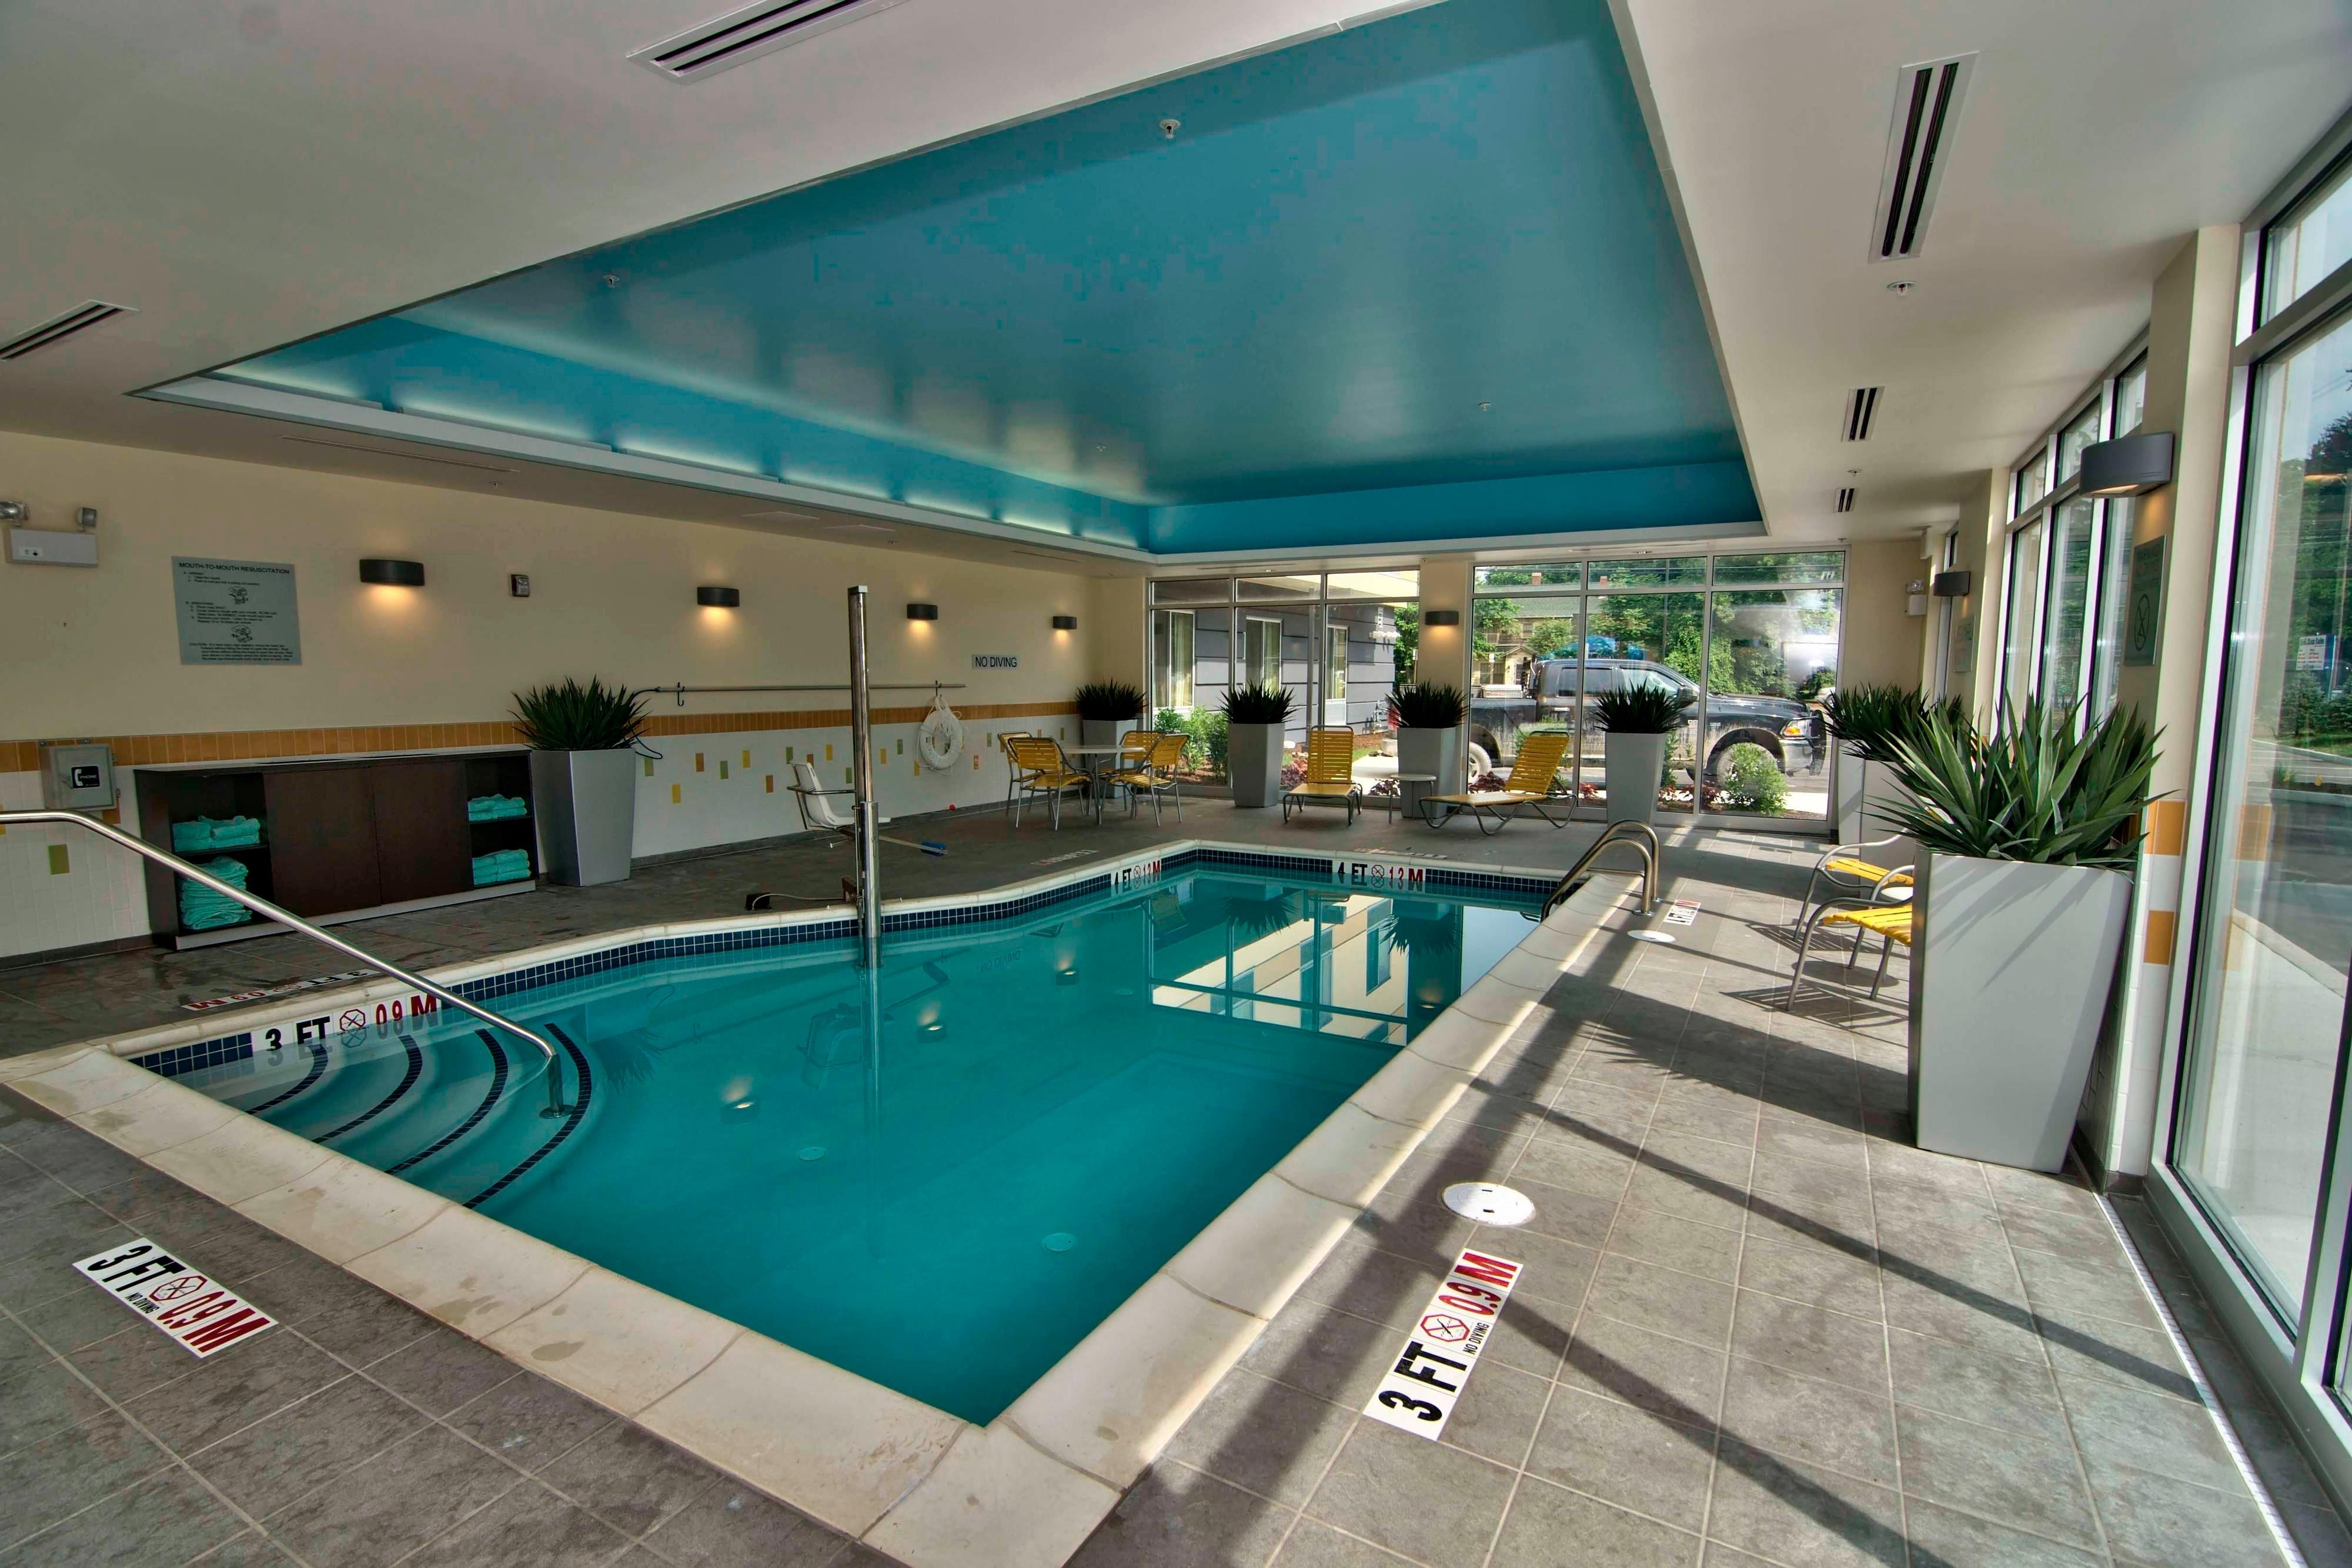 Towanda hotel indoor pool